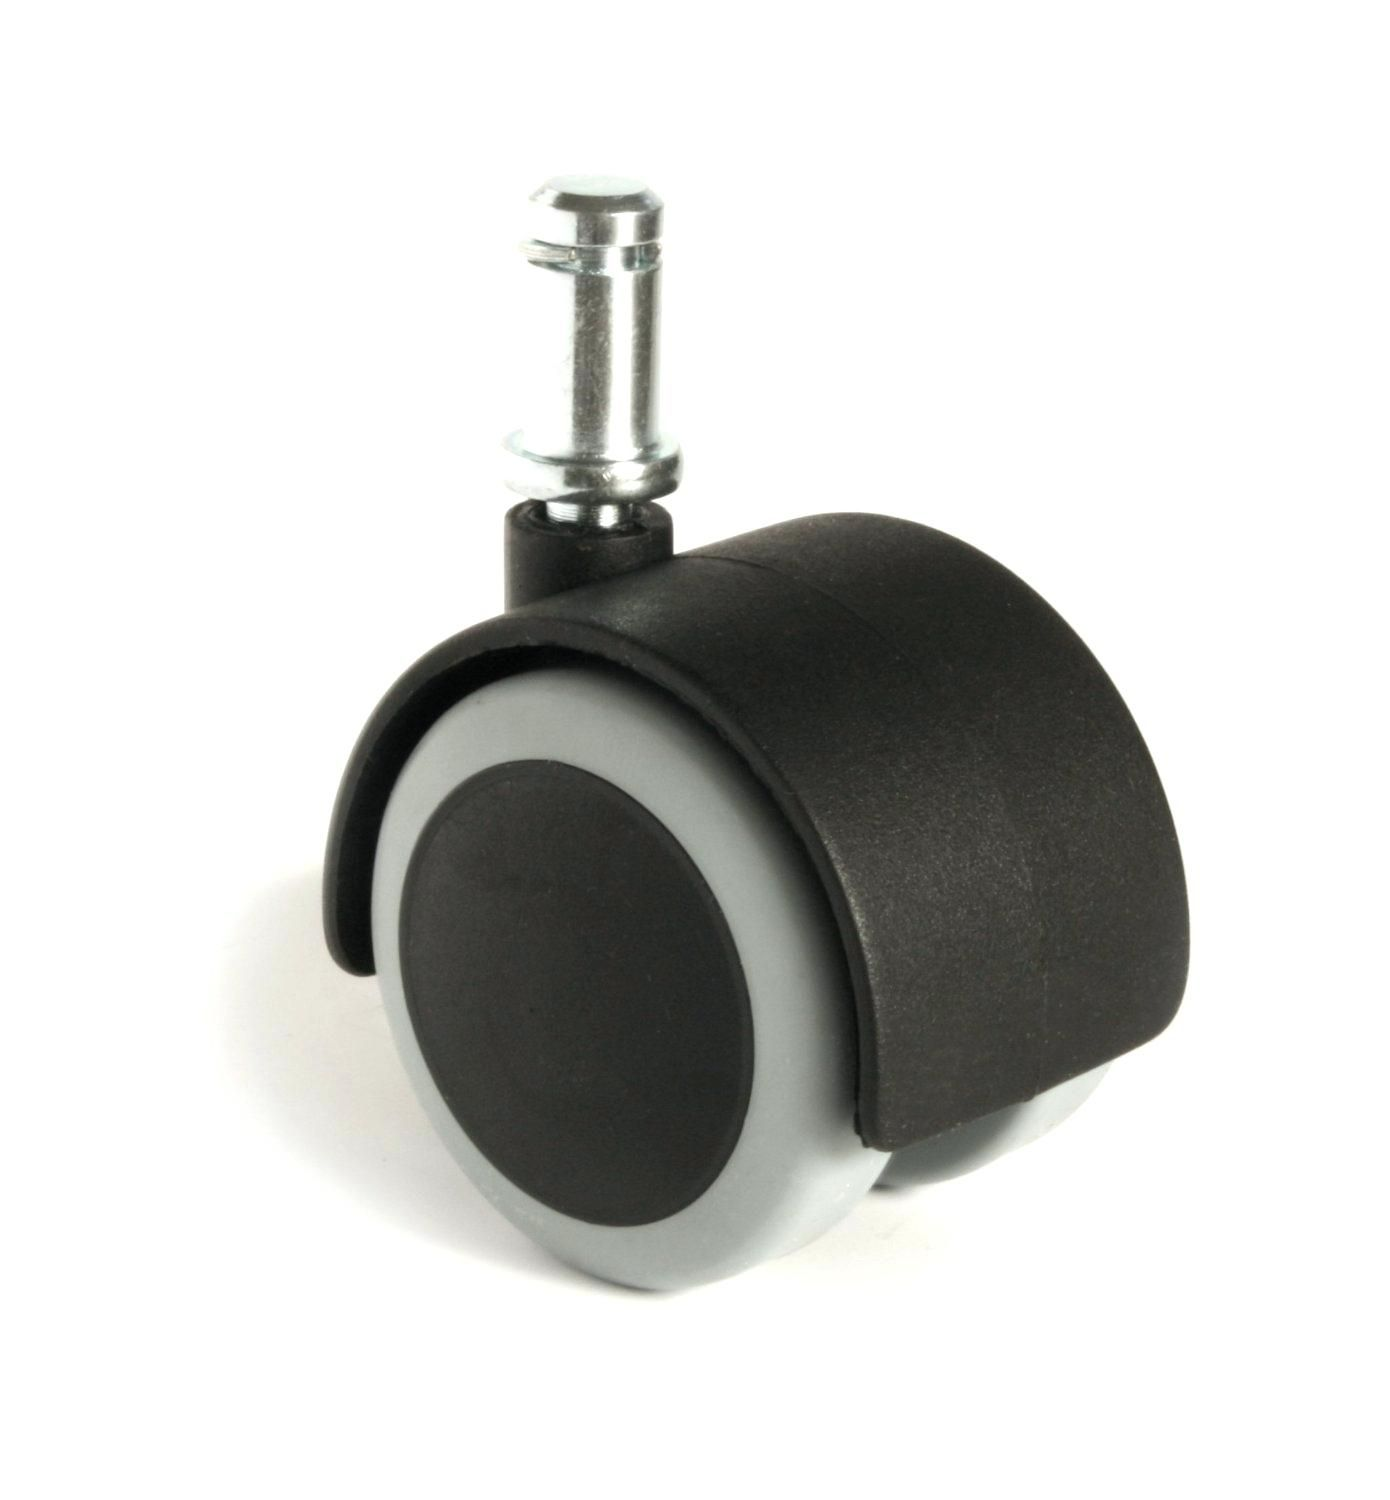 Polyurethane Office Chair Caster Wheels For Hardwood Floors